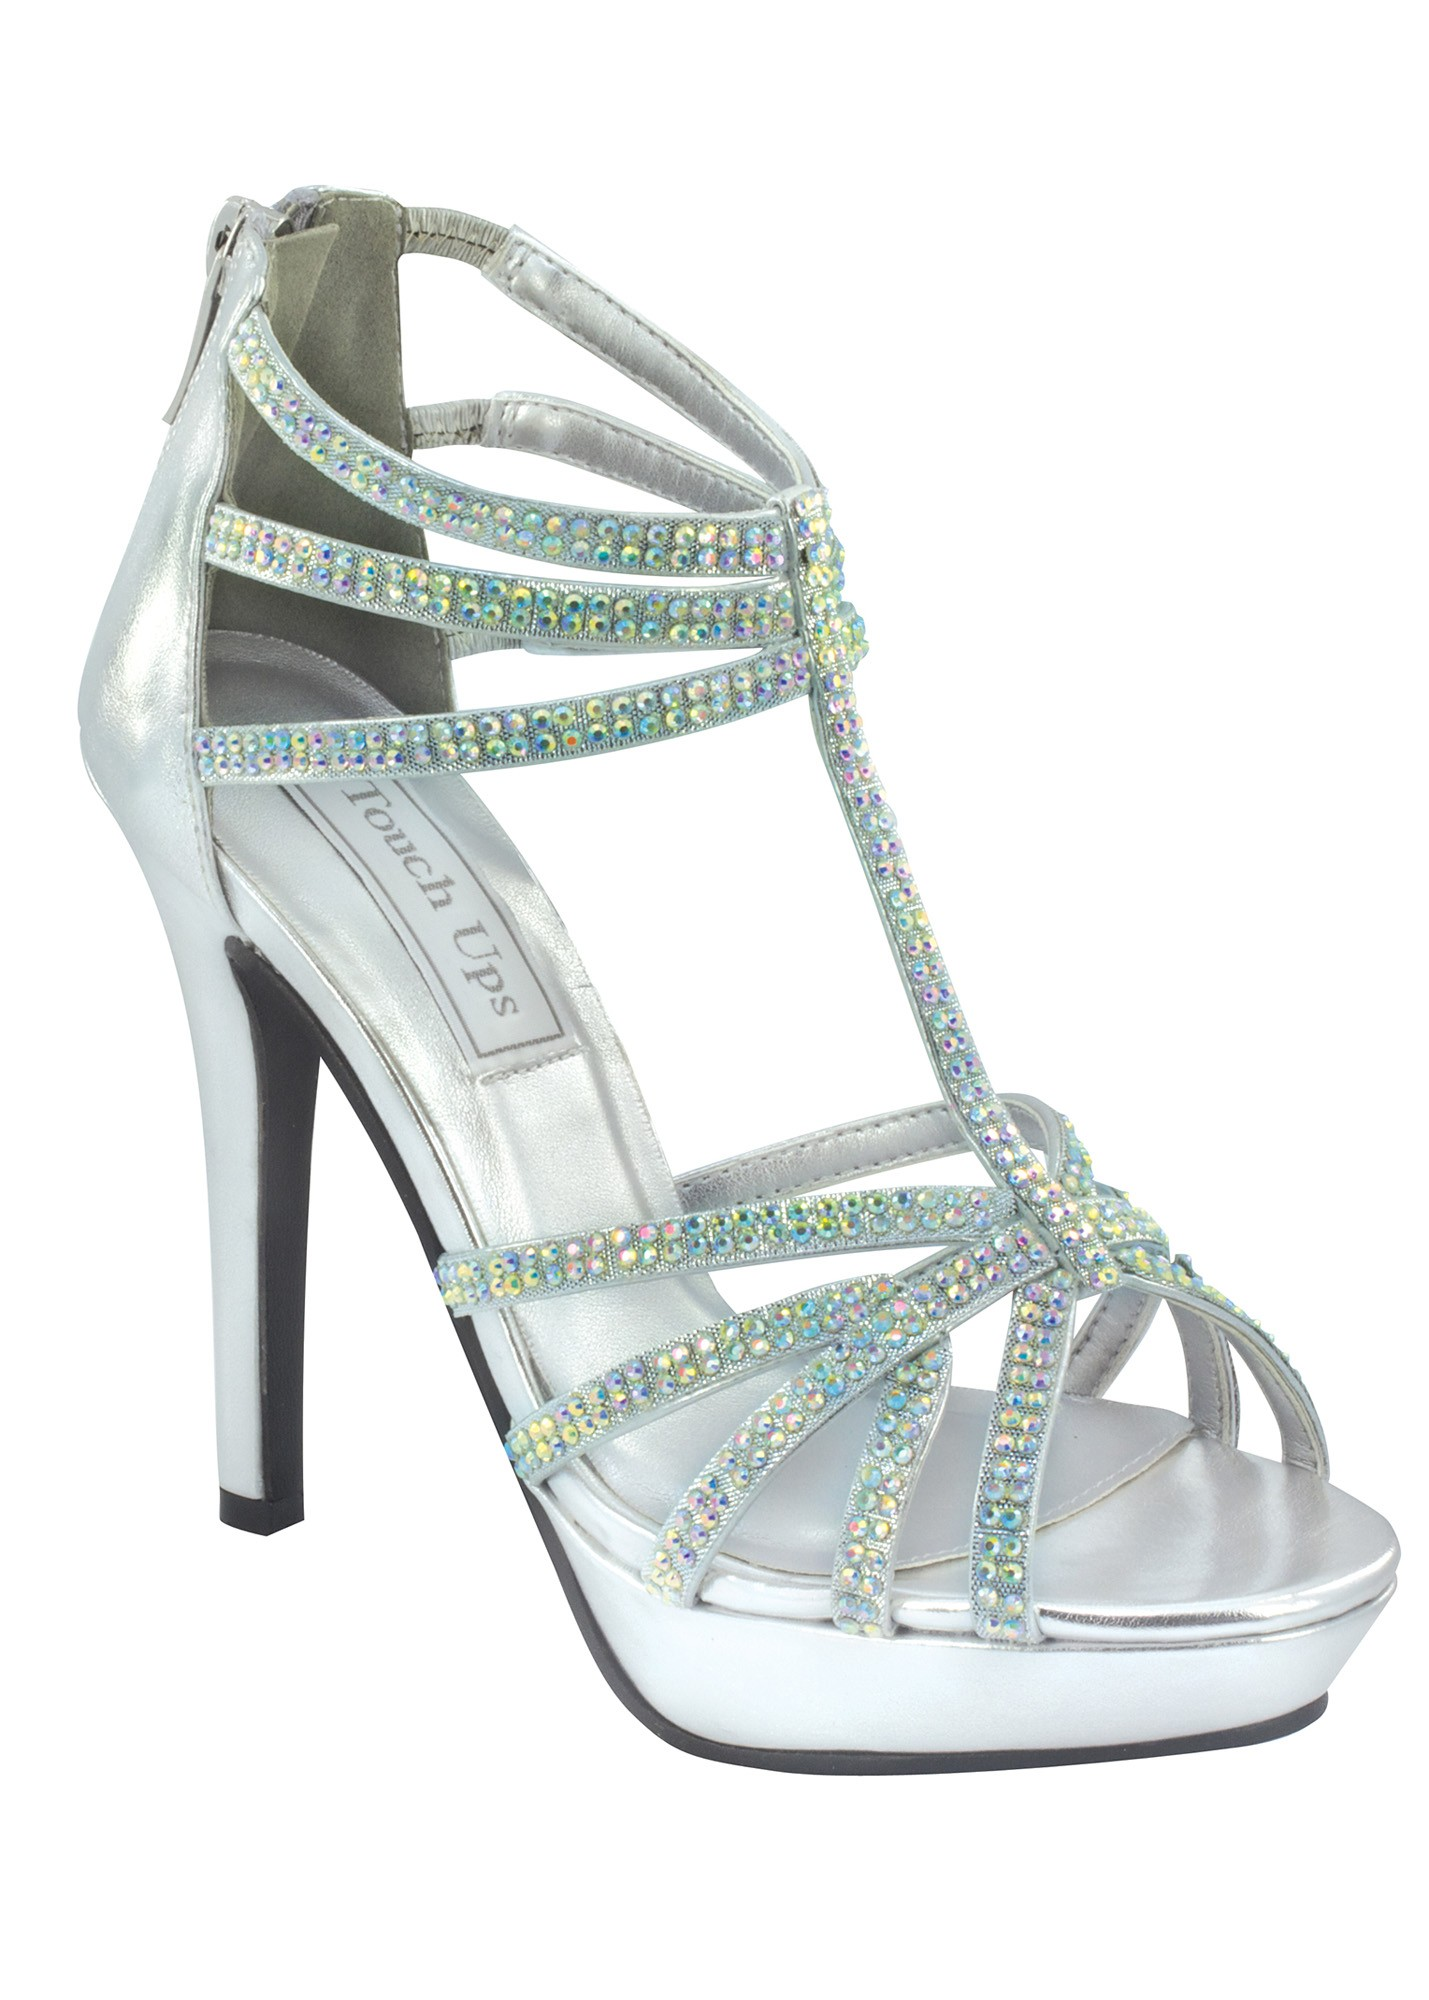 Touch Ups Toni - Silver Strappy Prom Dress Shoes - RissyRoos.com